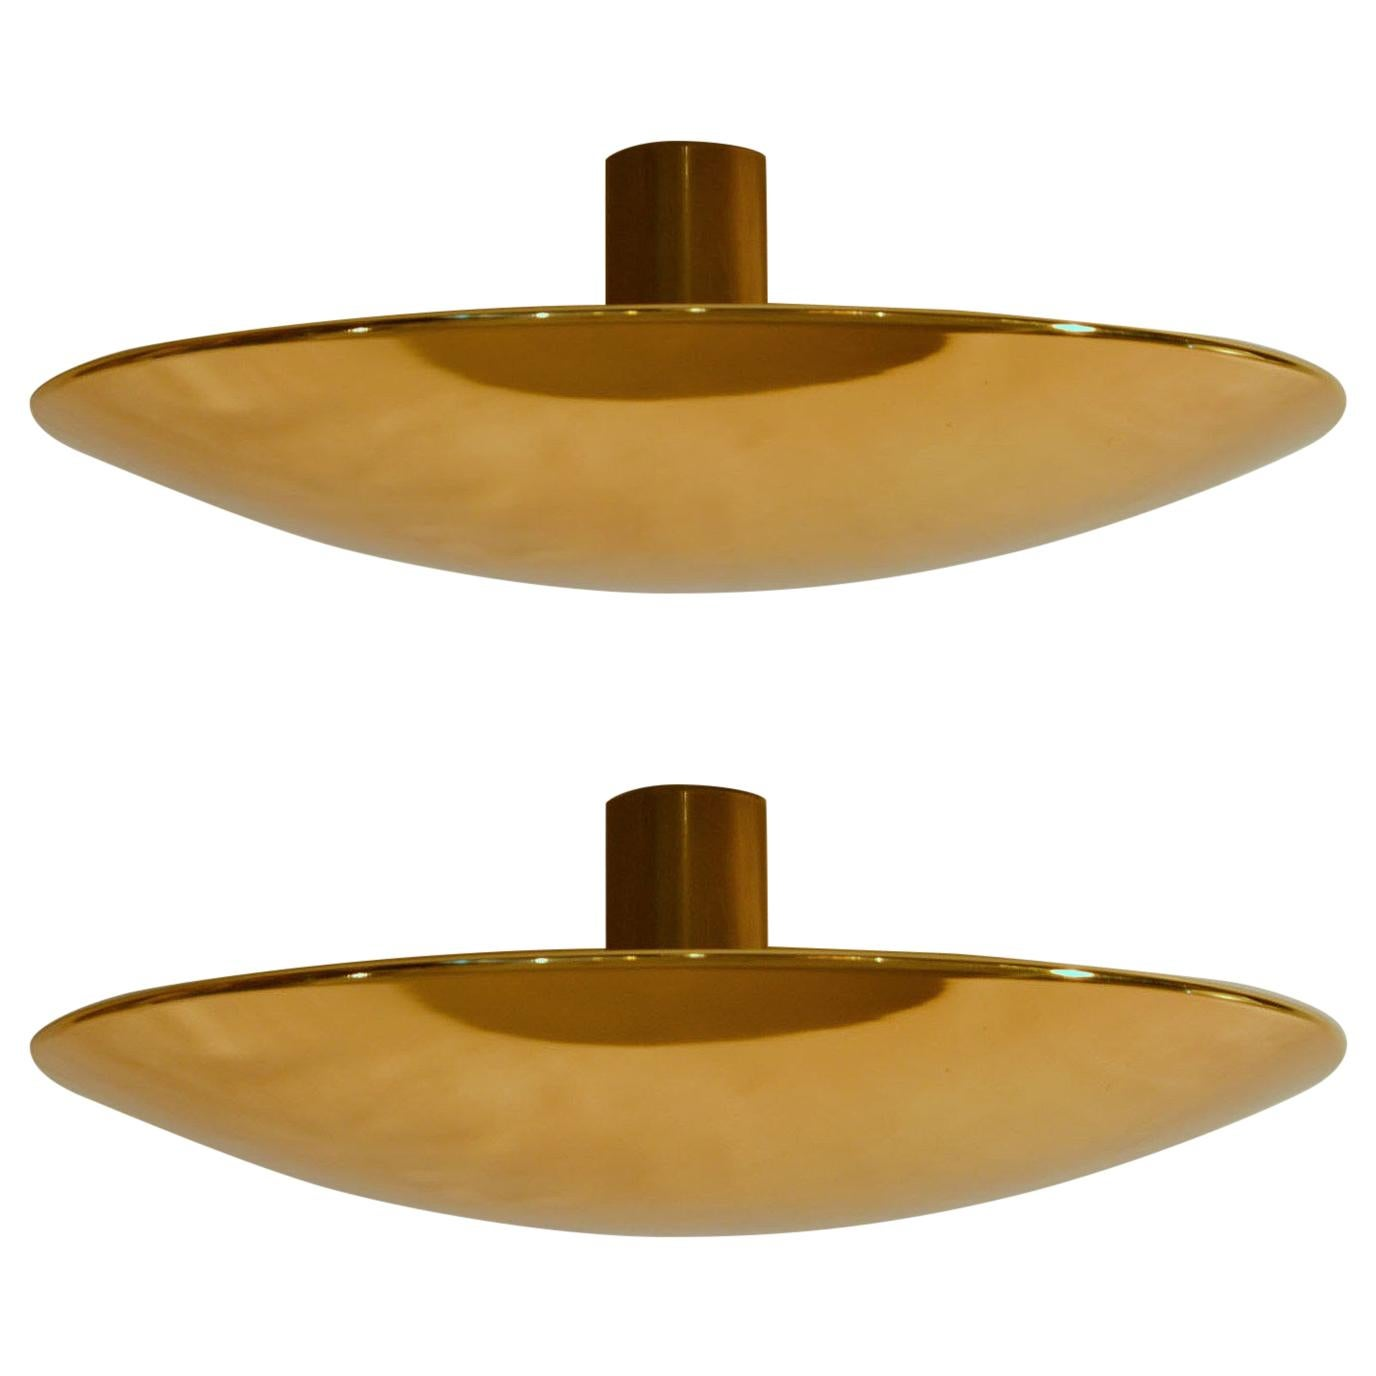 Pair of Large Brass Flush Mount Ceiling or Wall Lights by Florian Schulz